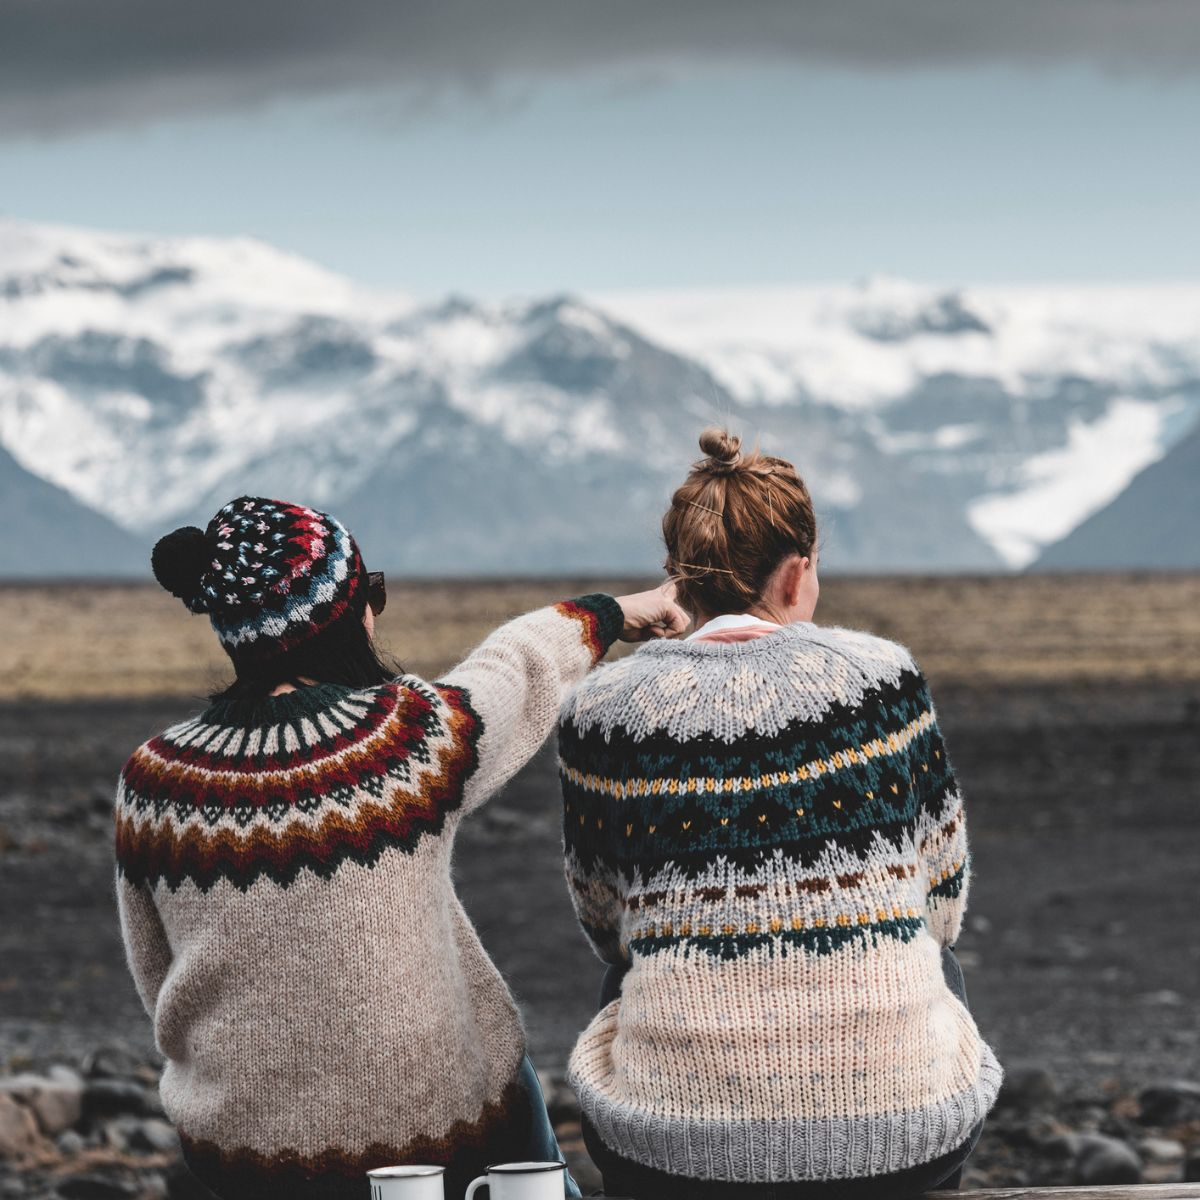 Two girls in Iceland